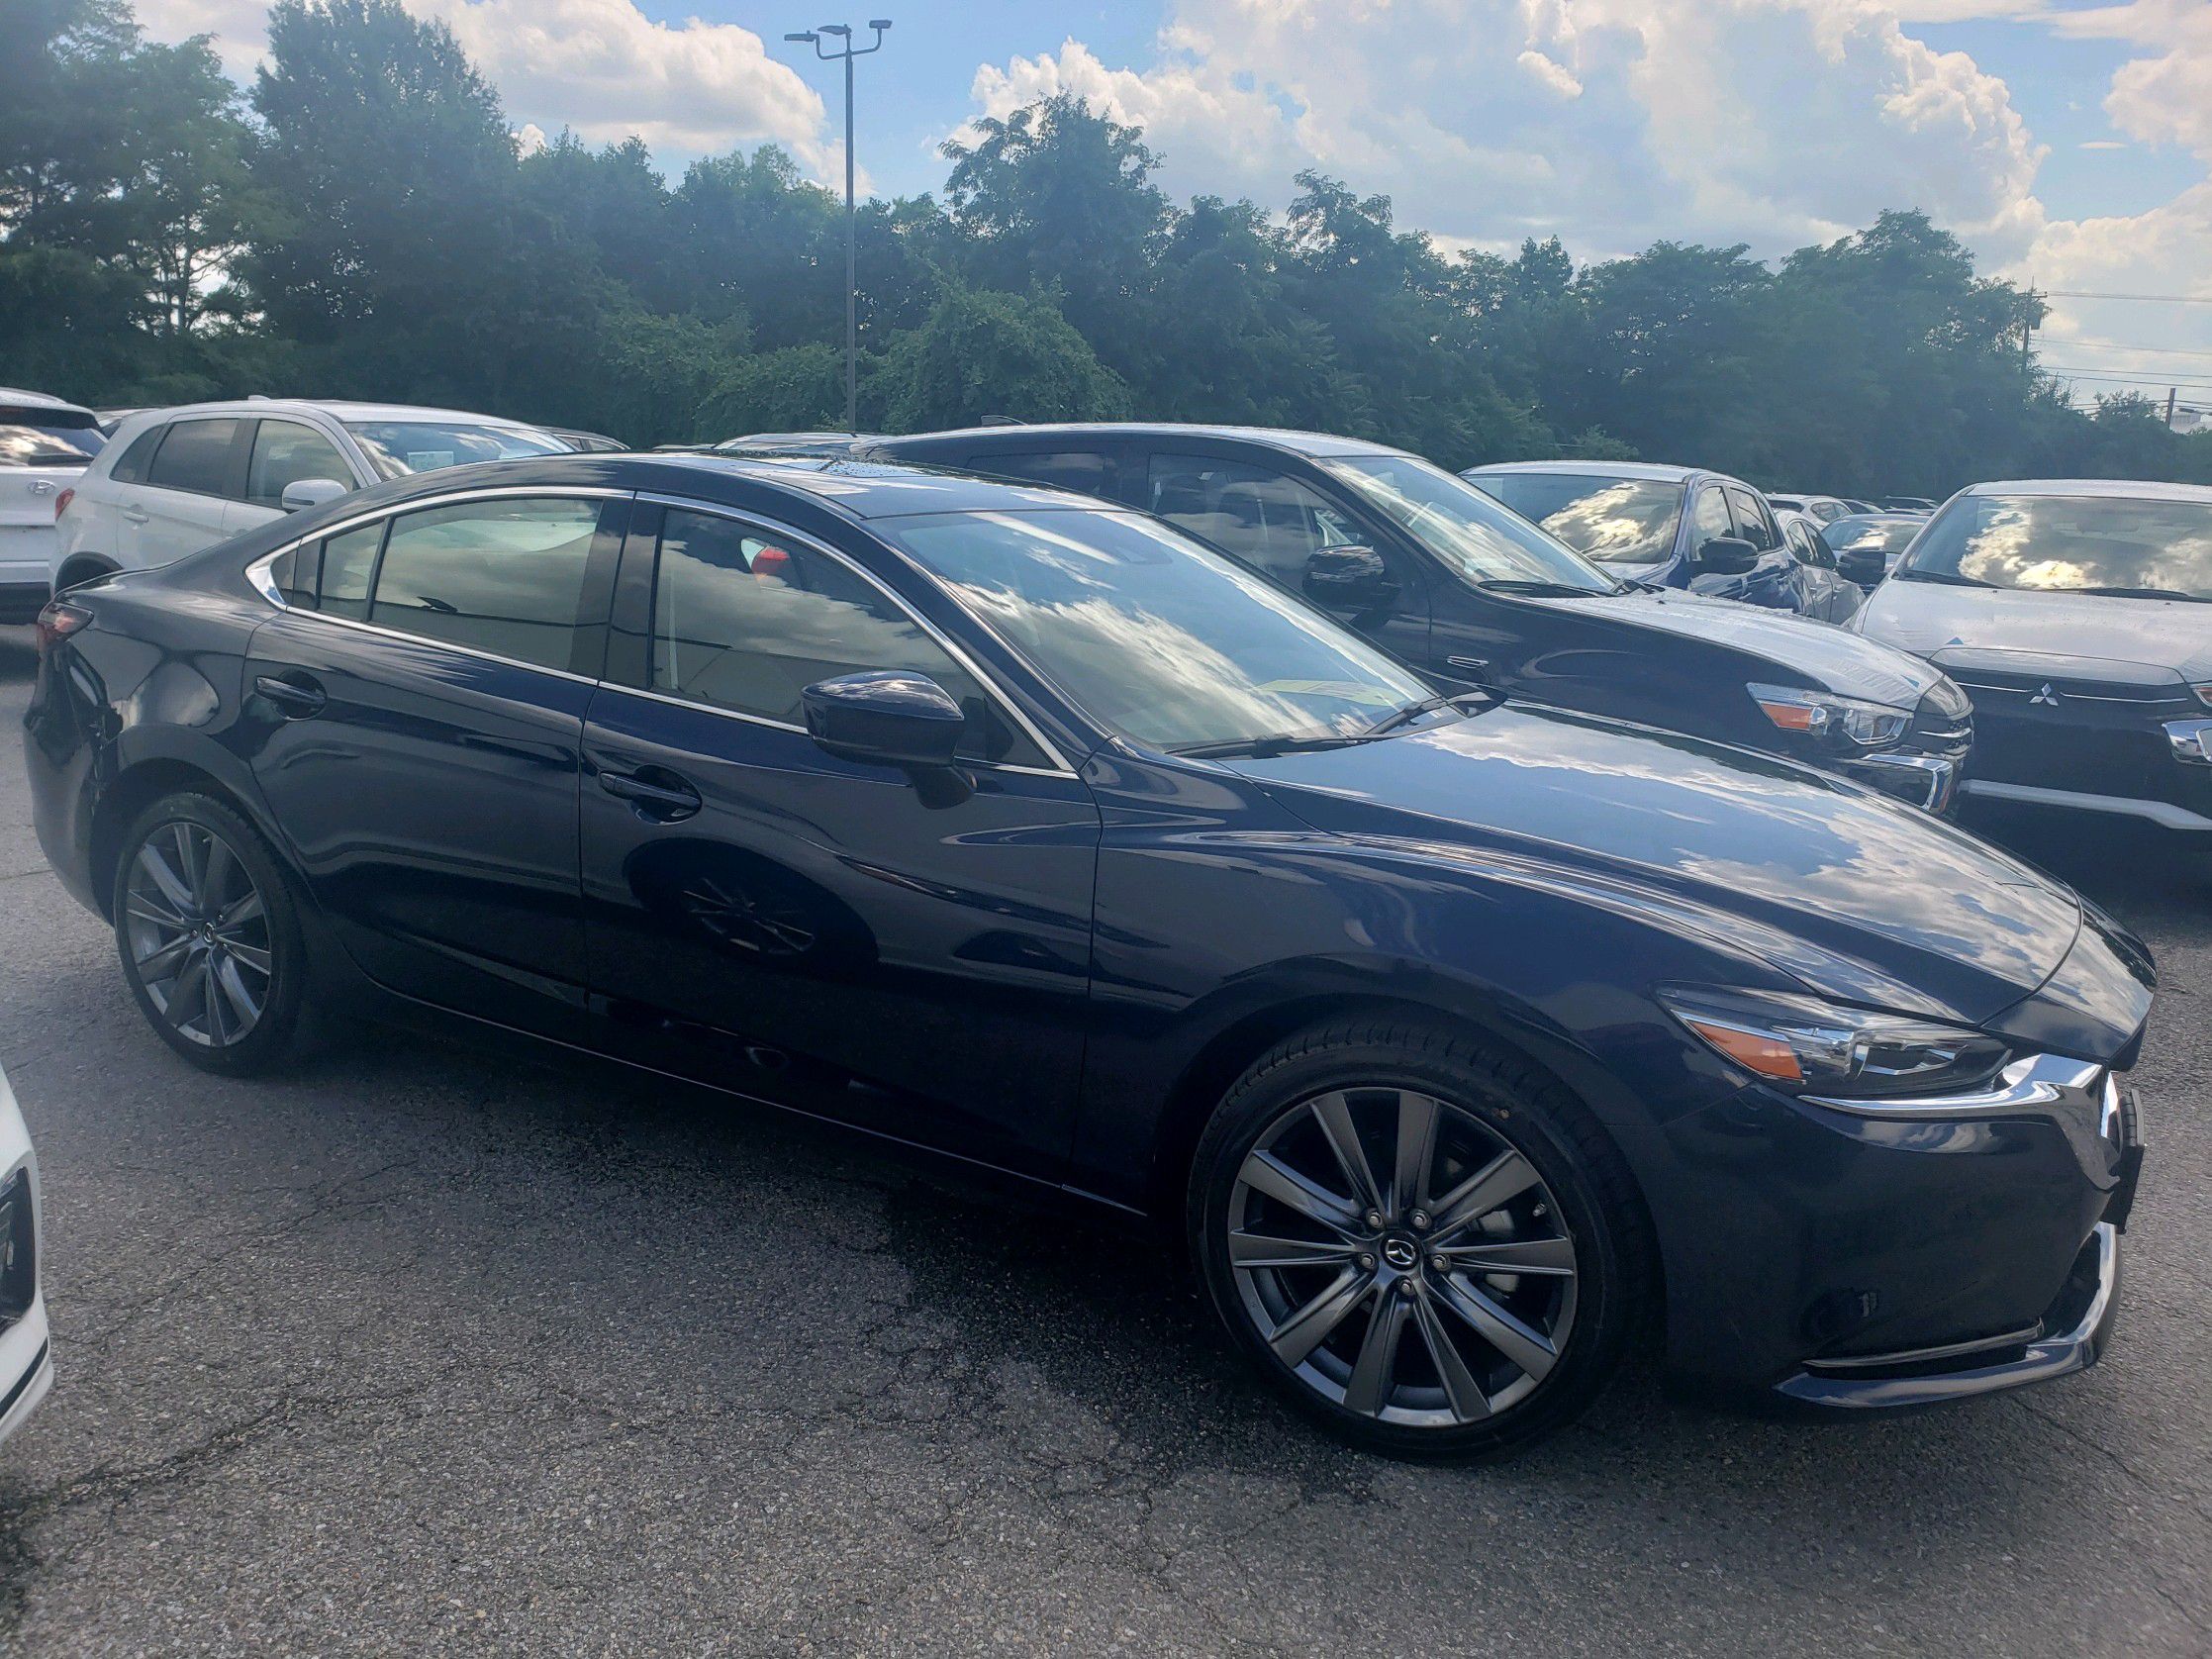 ourisman mazda 3514 laurel fort meade rd laurel md 20724 yp com yellow pages